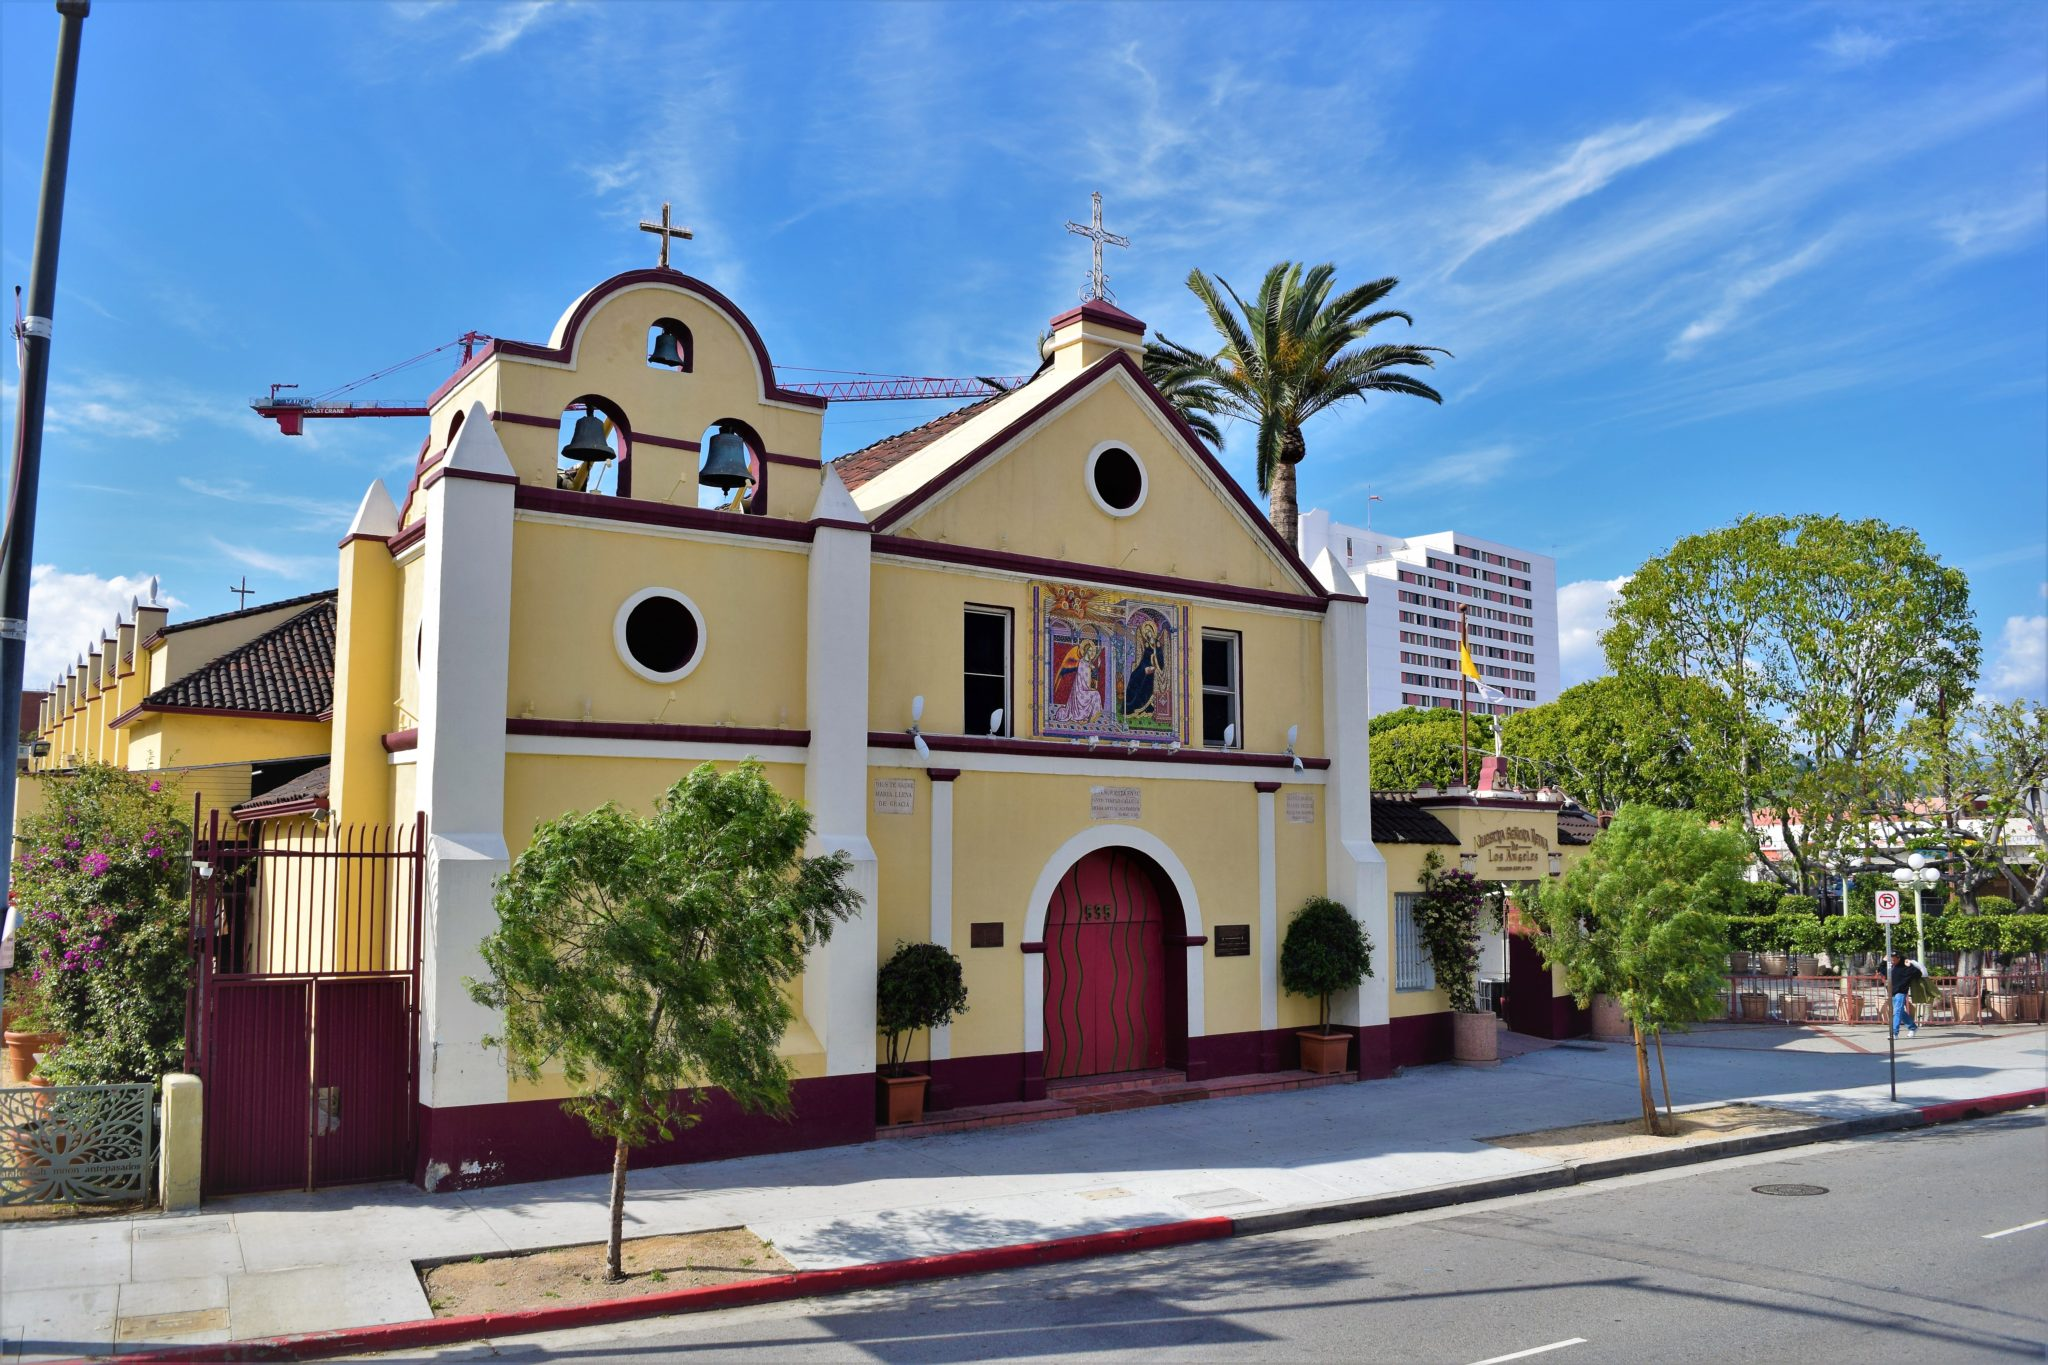 Little mexico, downtown los angeles, hop on hop off bus tour